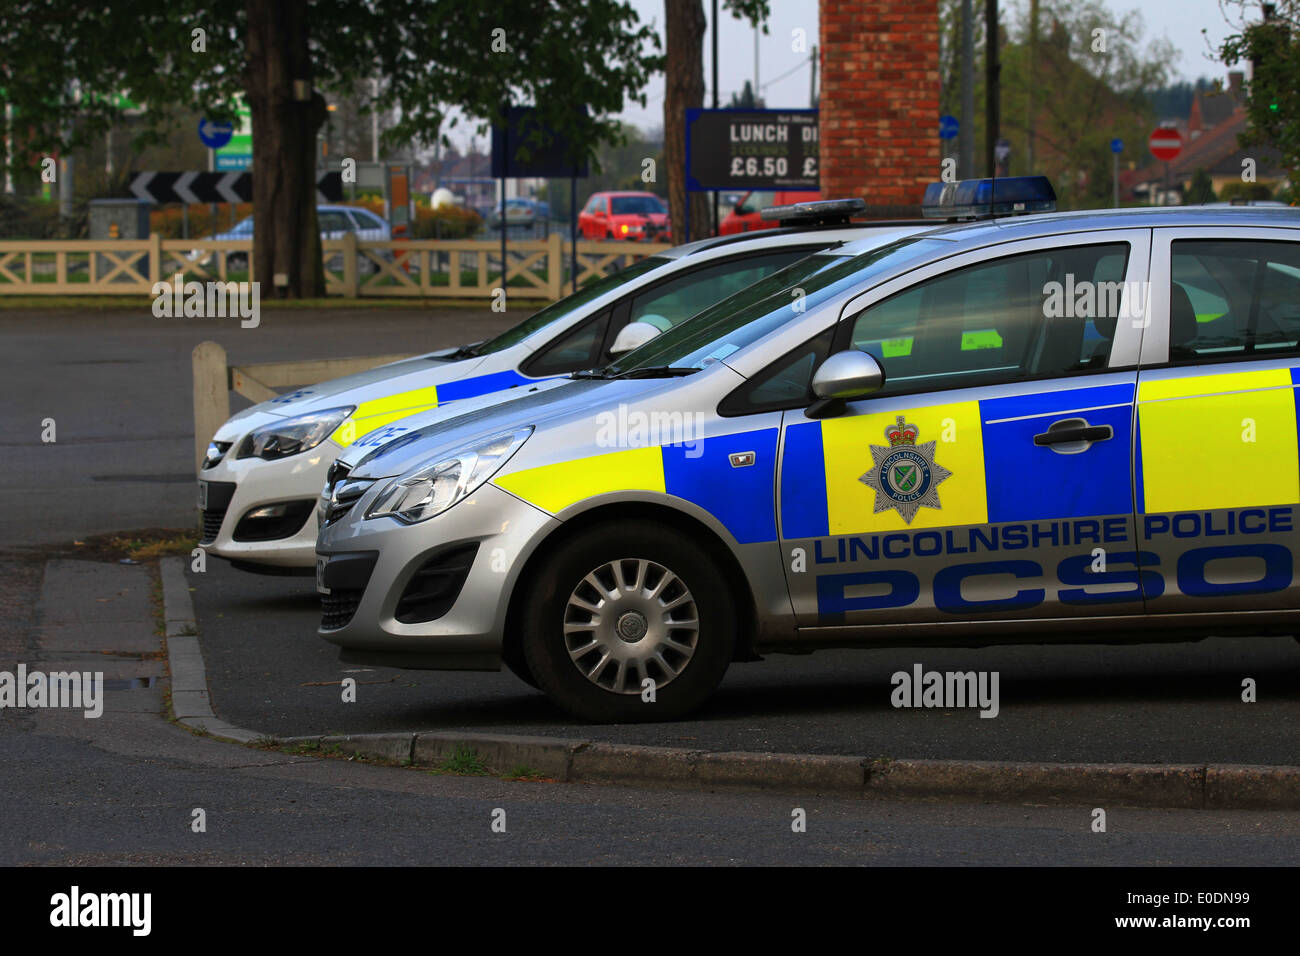 Police cars Ford Vs Vauxhall who will win  Fight, Harry Hill style. Fords are dated and Vauxhall don't use very strong glue. - Stock Image